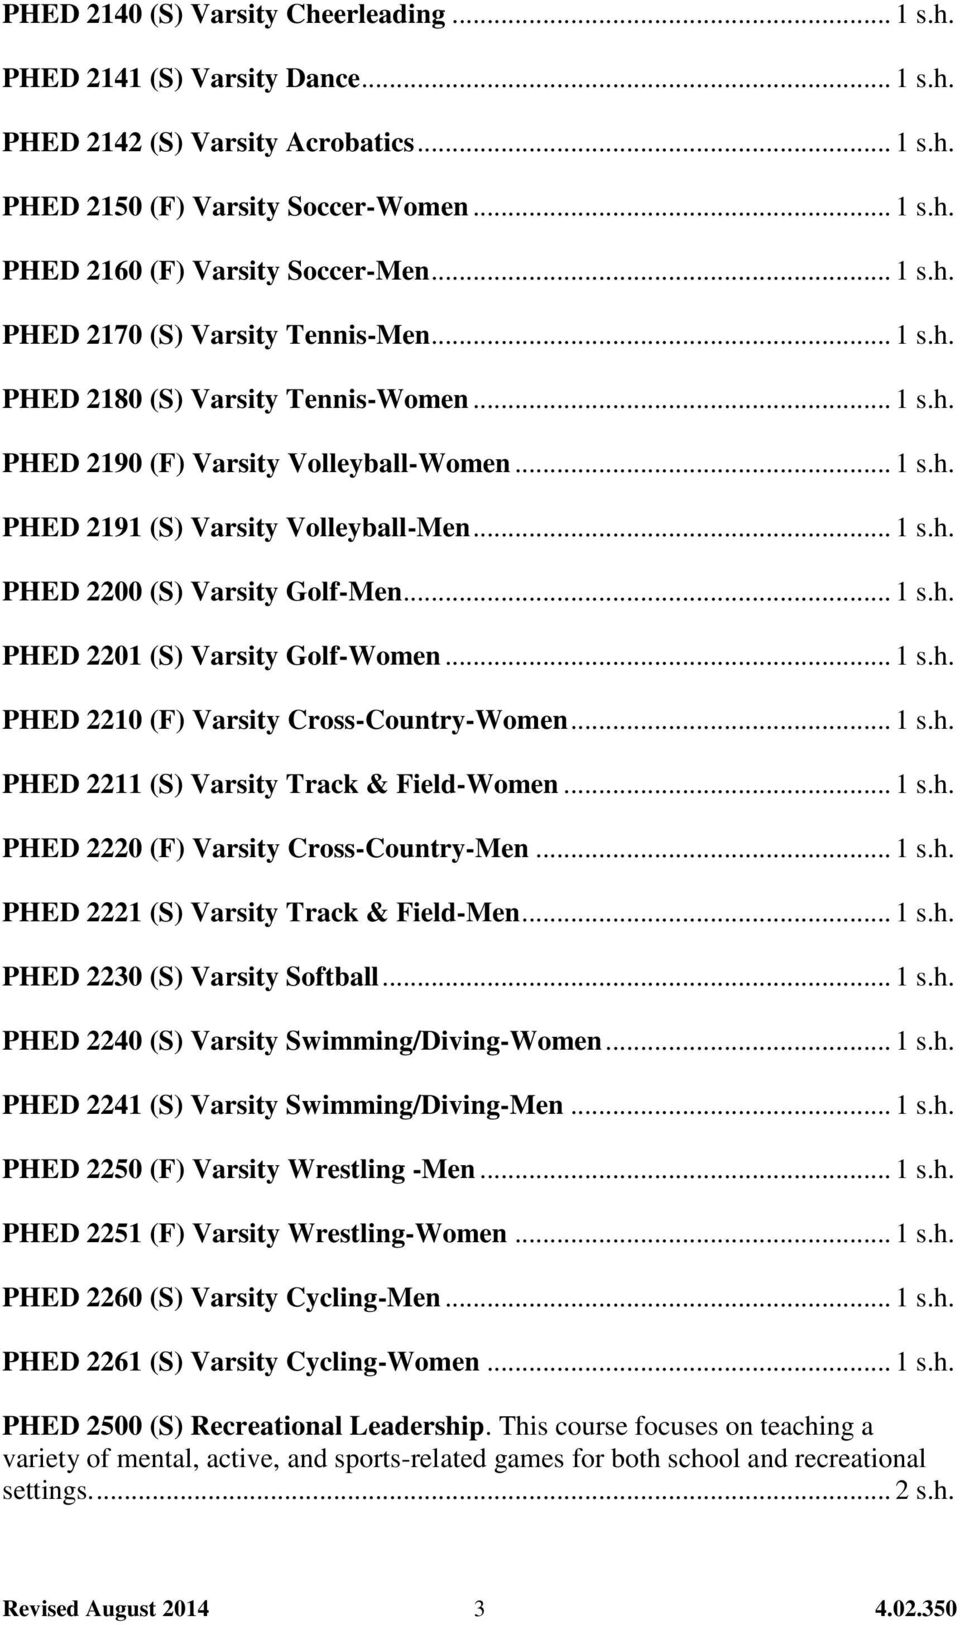 .. 1 s.h. PHED 2201 (S) Varsity Golf-Women... 1 s.h. PHED 2210 (F) Varsity Cross-Country-Women... 1 s.h. PHED 2211 (S) Varsity Track & Field-Women... 1 s.h. PHED 2220 (F) Varsity Cross-Country-Men.